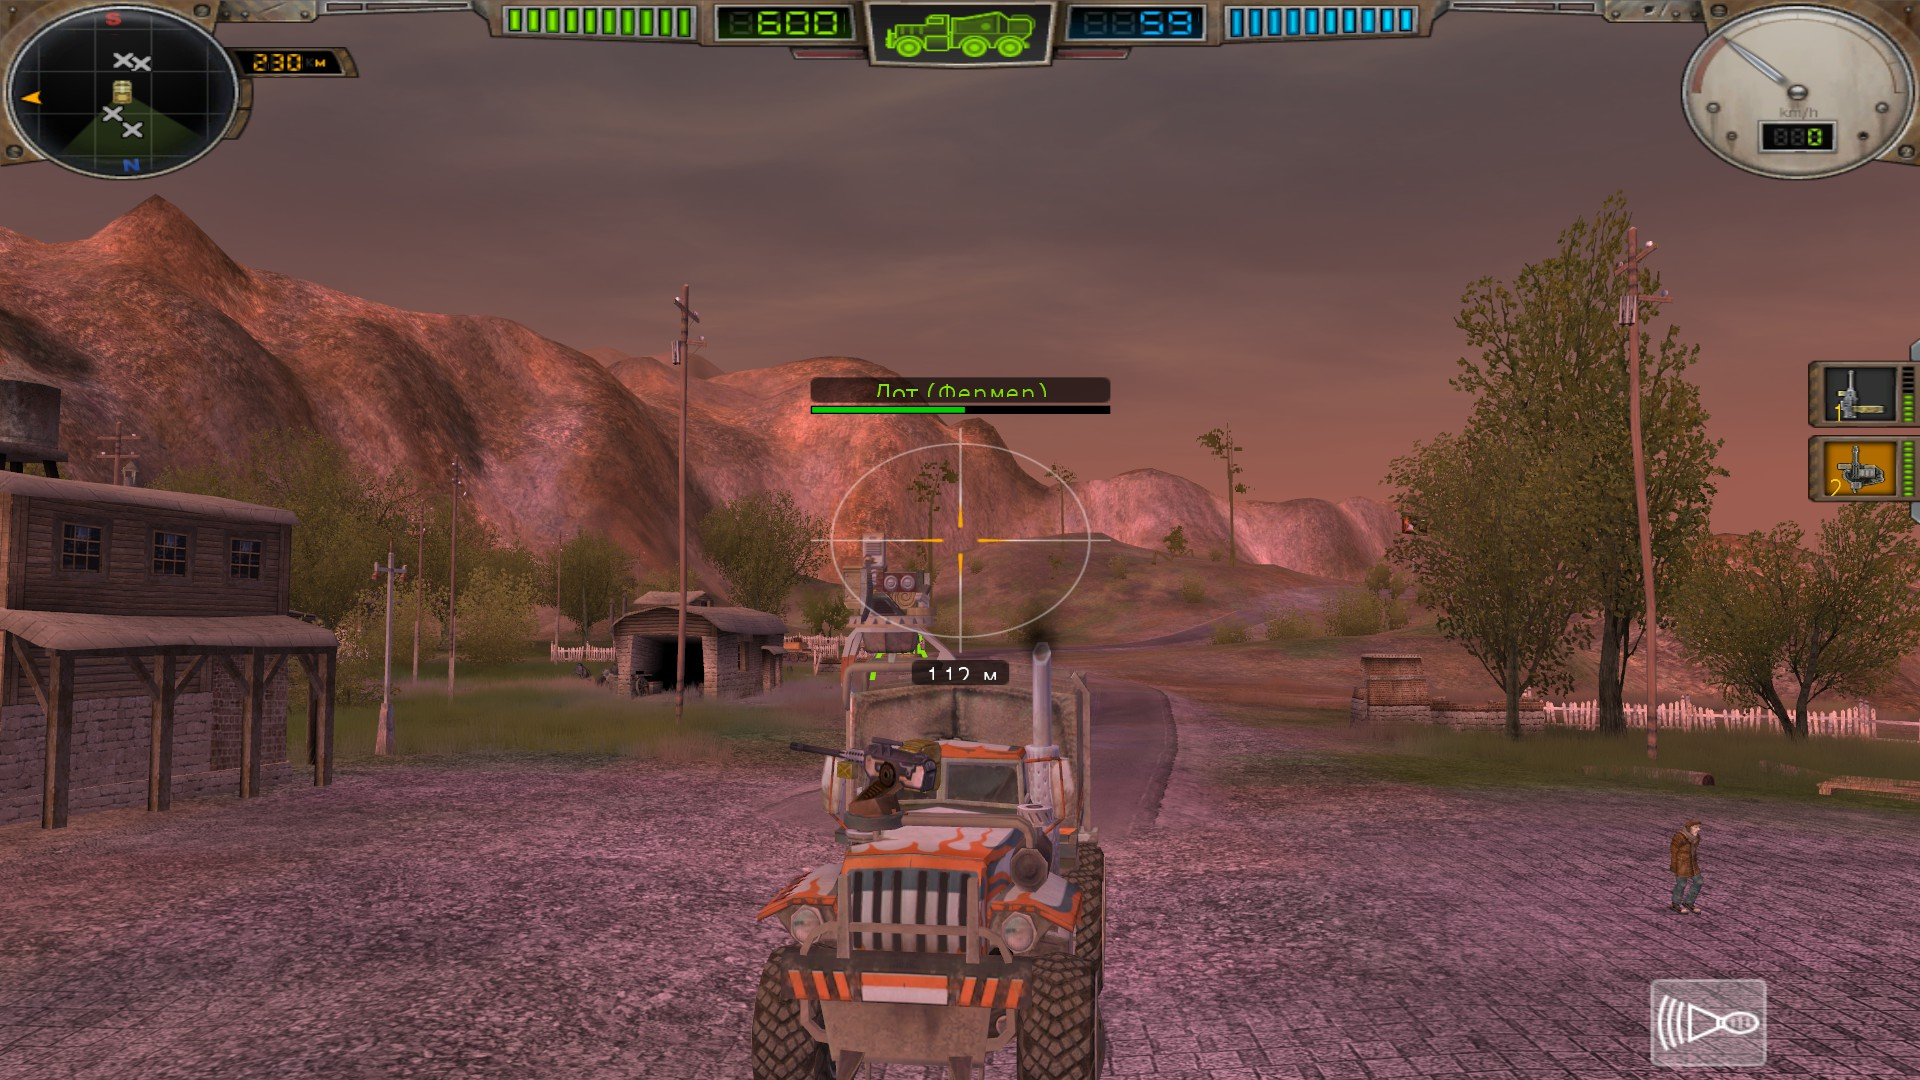 Hard Truck Apocalypse: Rise Of Clans / Ex Machina: Meridian 113 screenshot